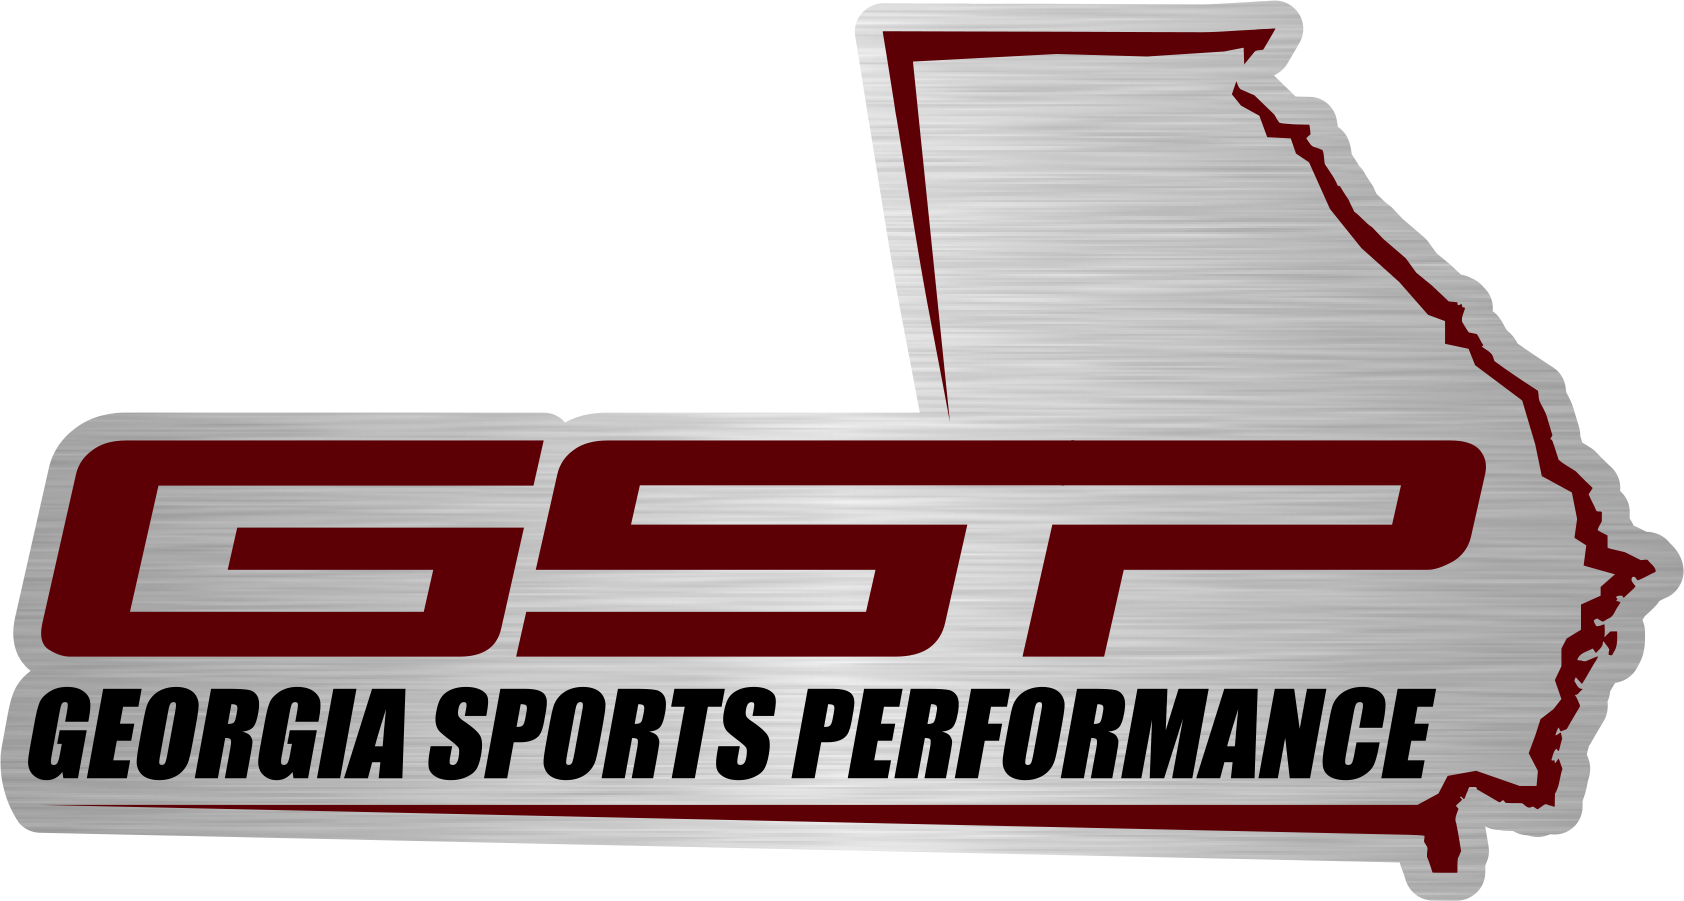 Georgia Sports Performance Sticky Logo Retina